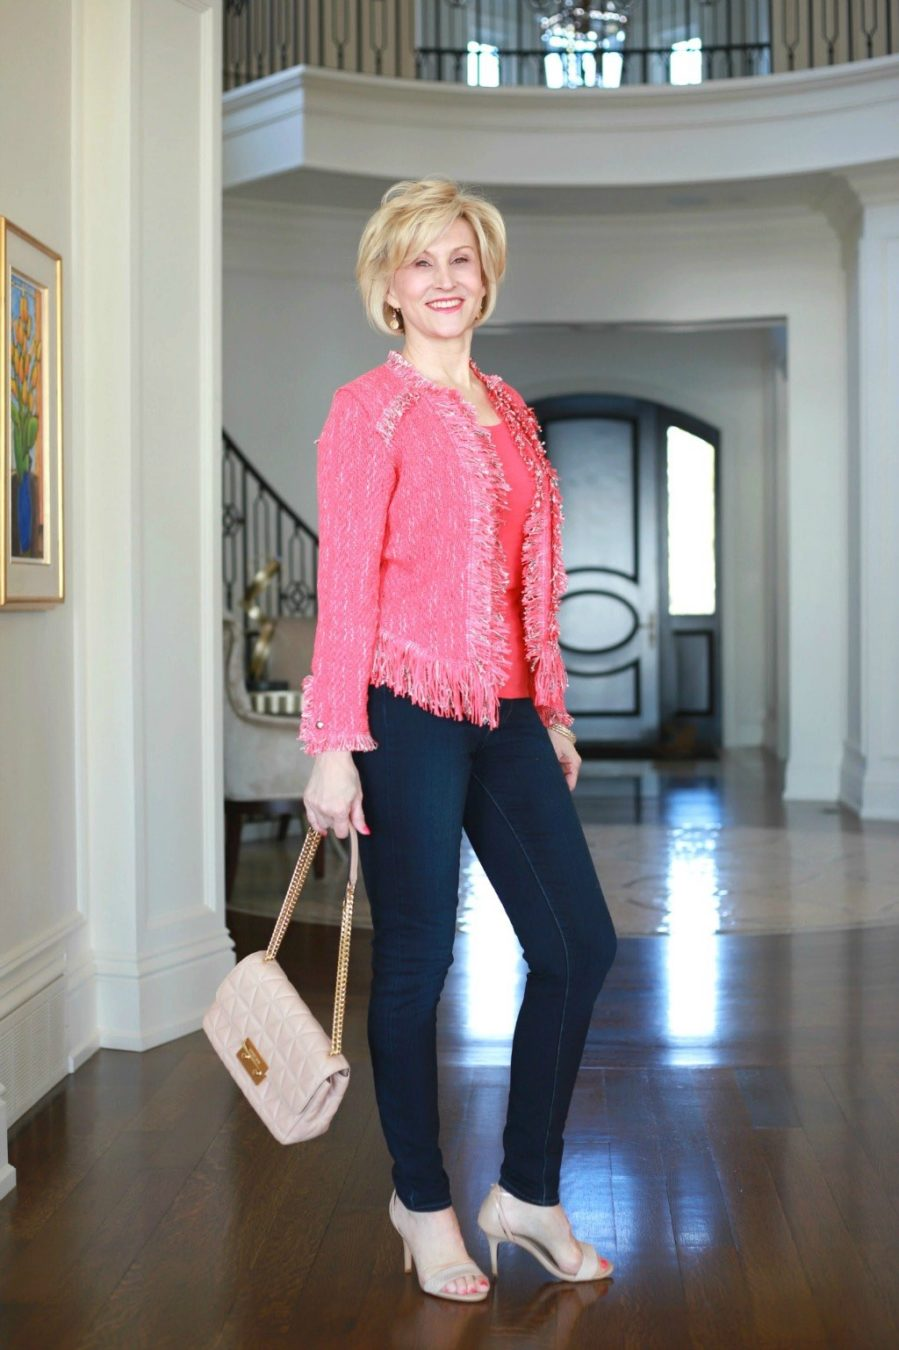 Coral Fringe Jacket, coral tank top, jeans and quilted tan shoulder bag worn by Deborah Boland